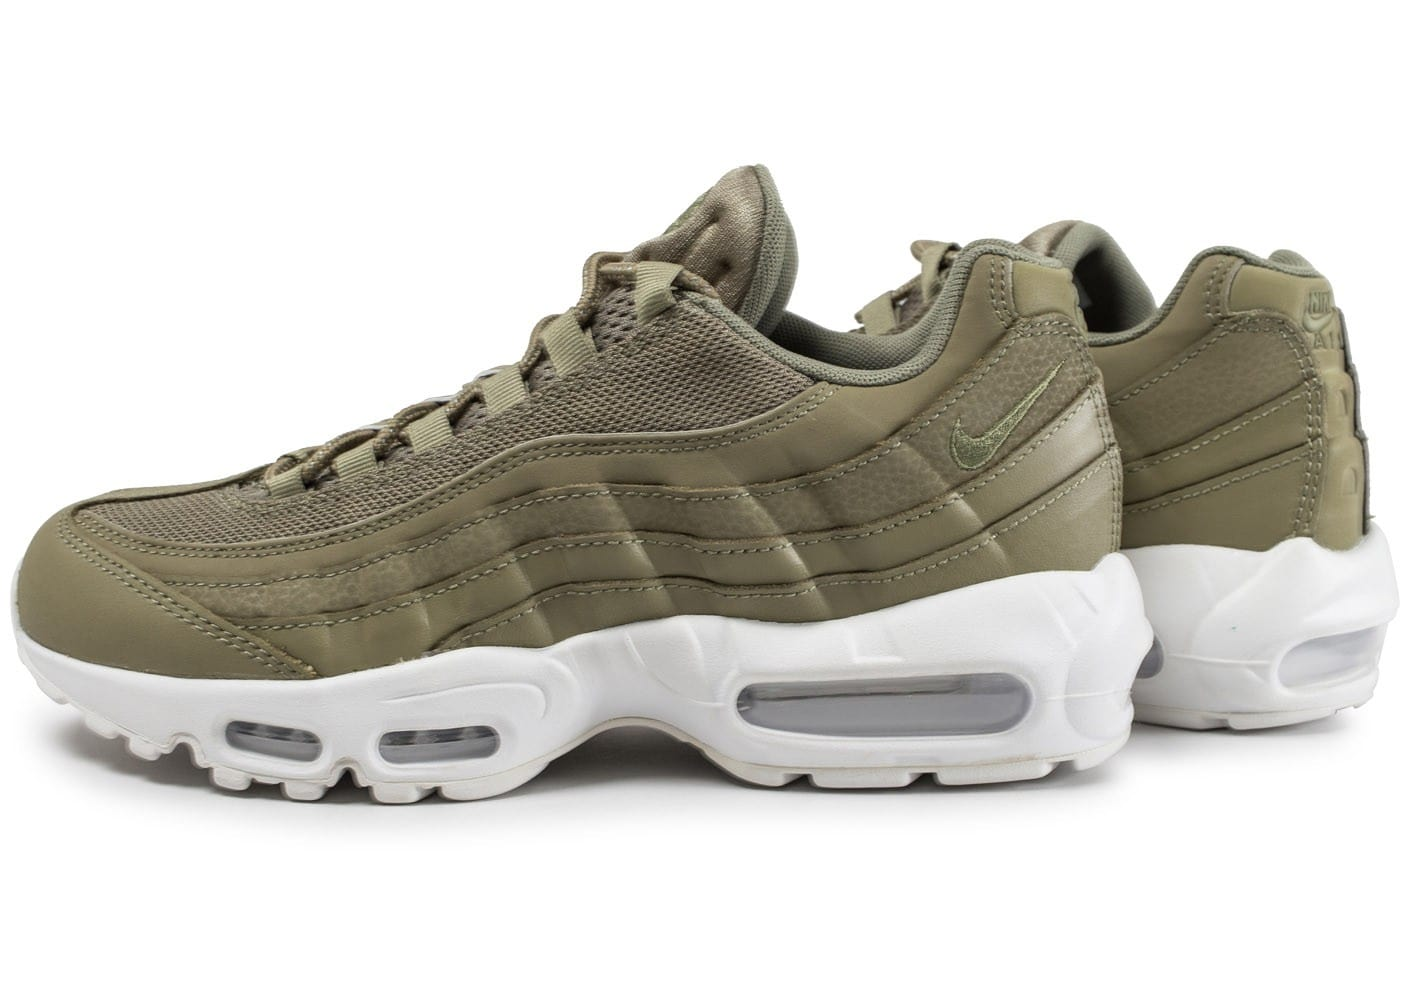 new york best choice best wholesaler Nike Air Max 95 Essential kaki - Chaussures Baskets homme ...